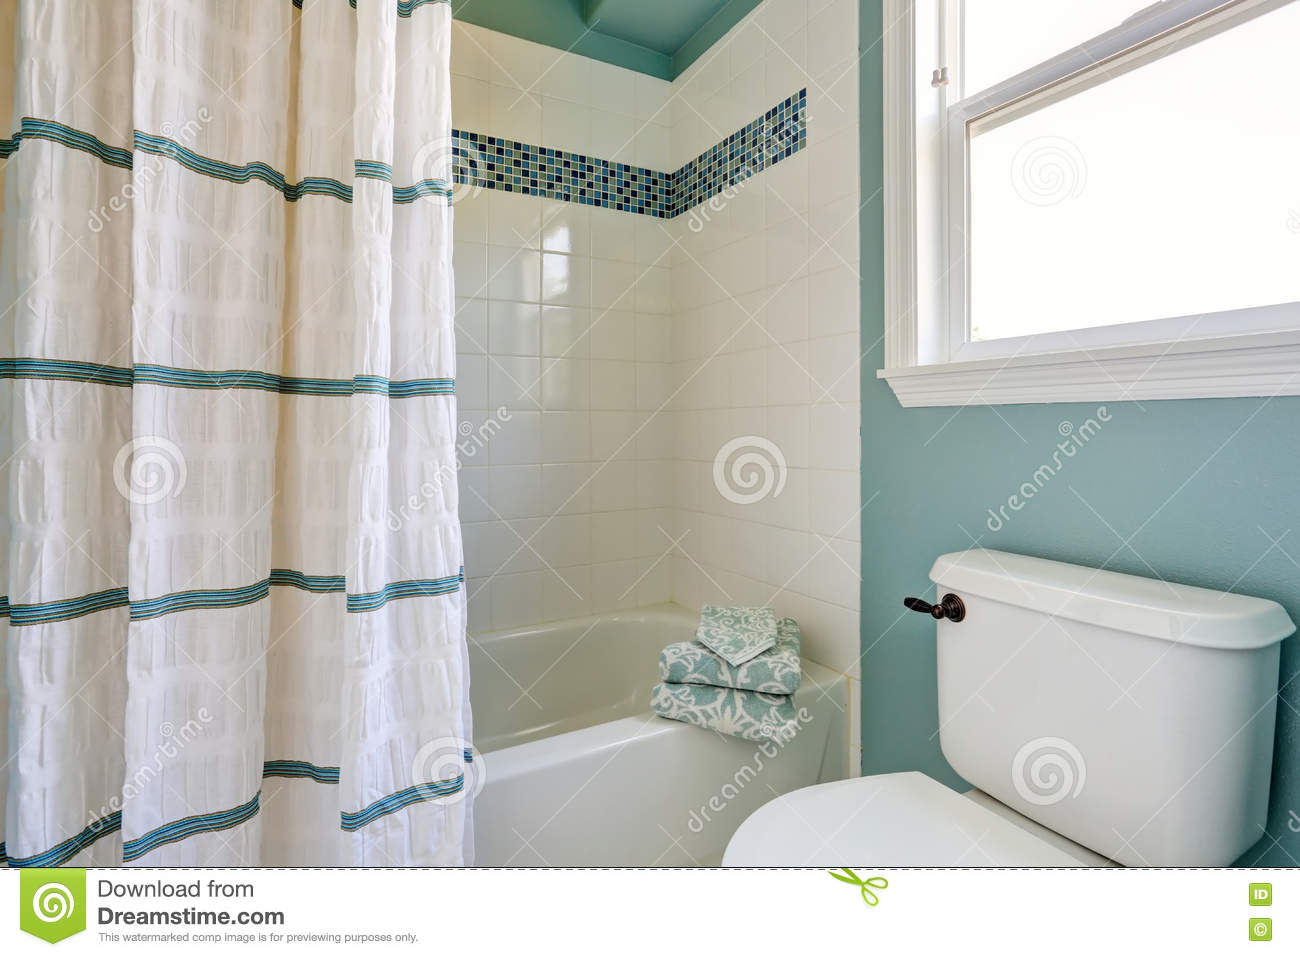 white and blue bathroom interior with mosaic tile trim stock photo